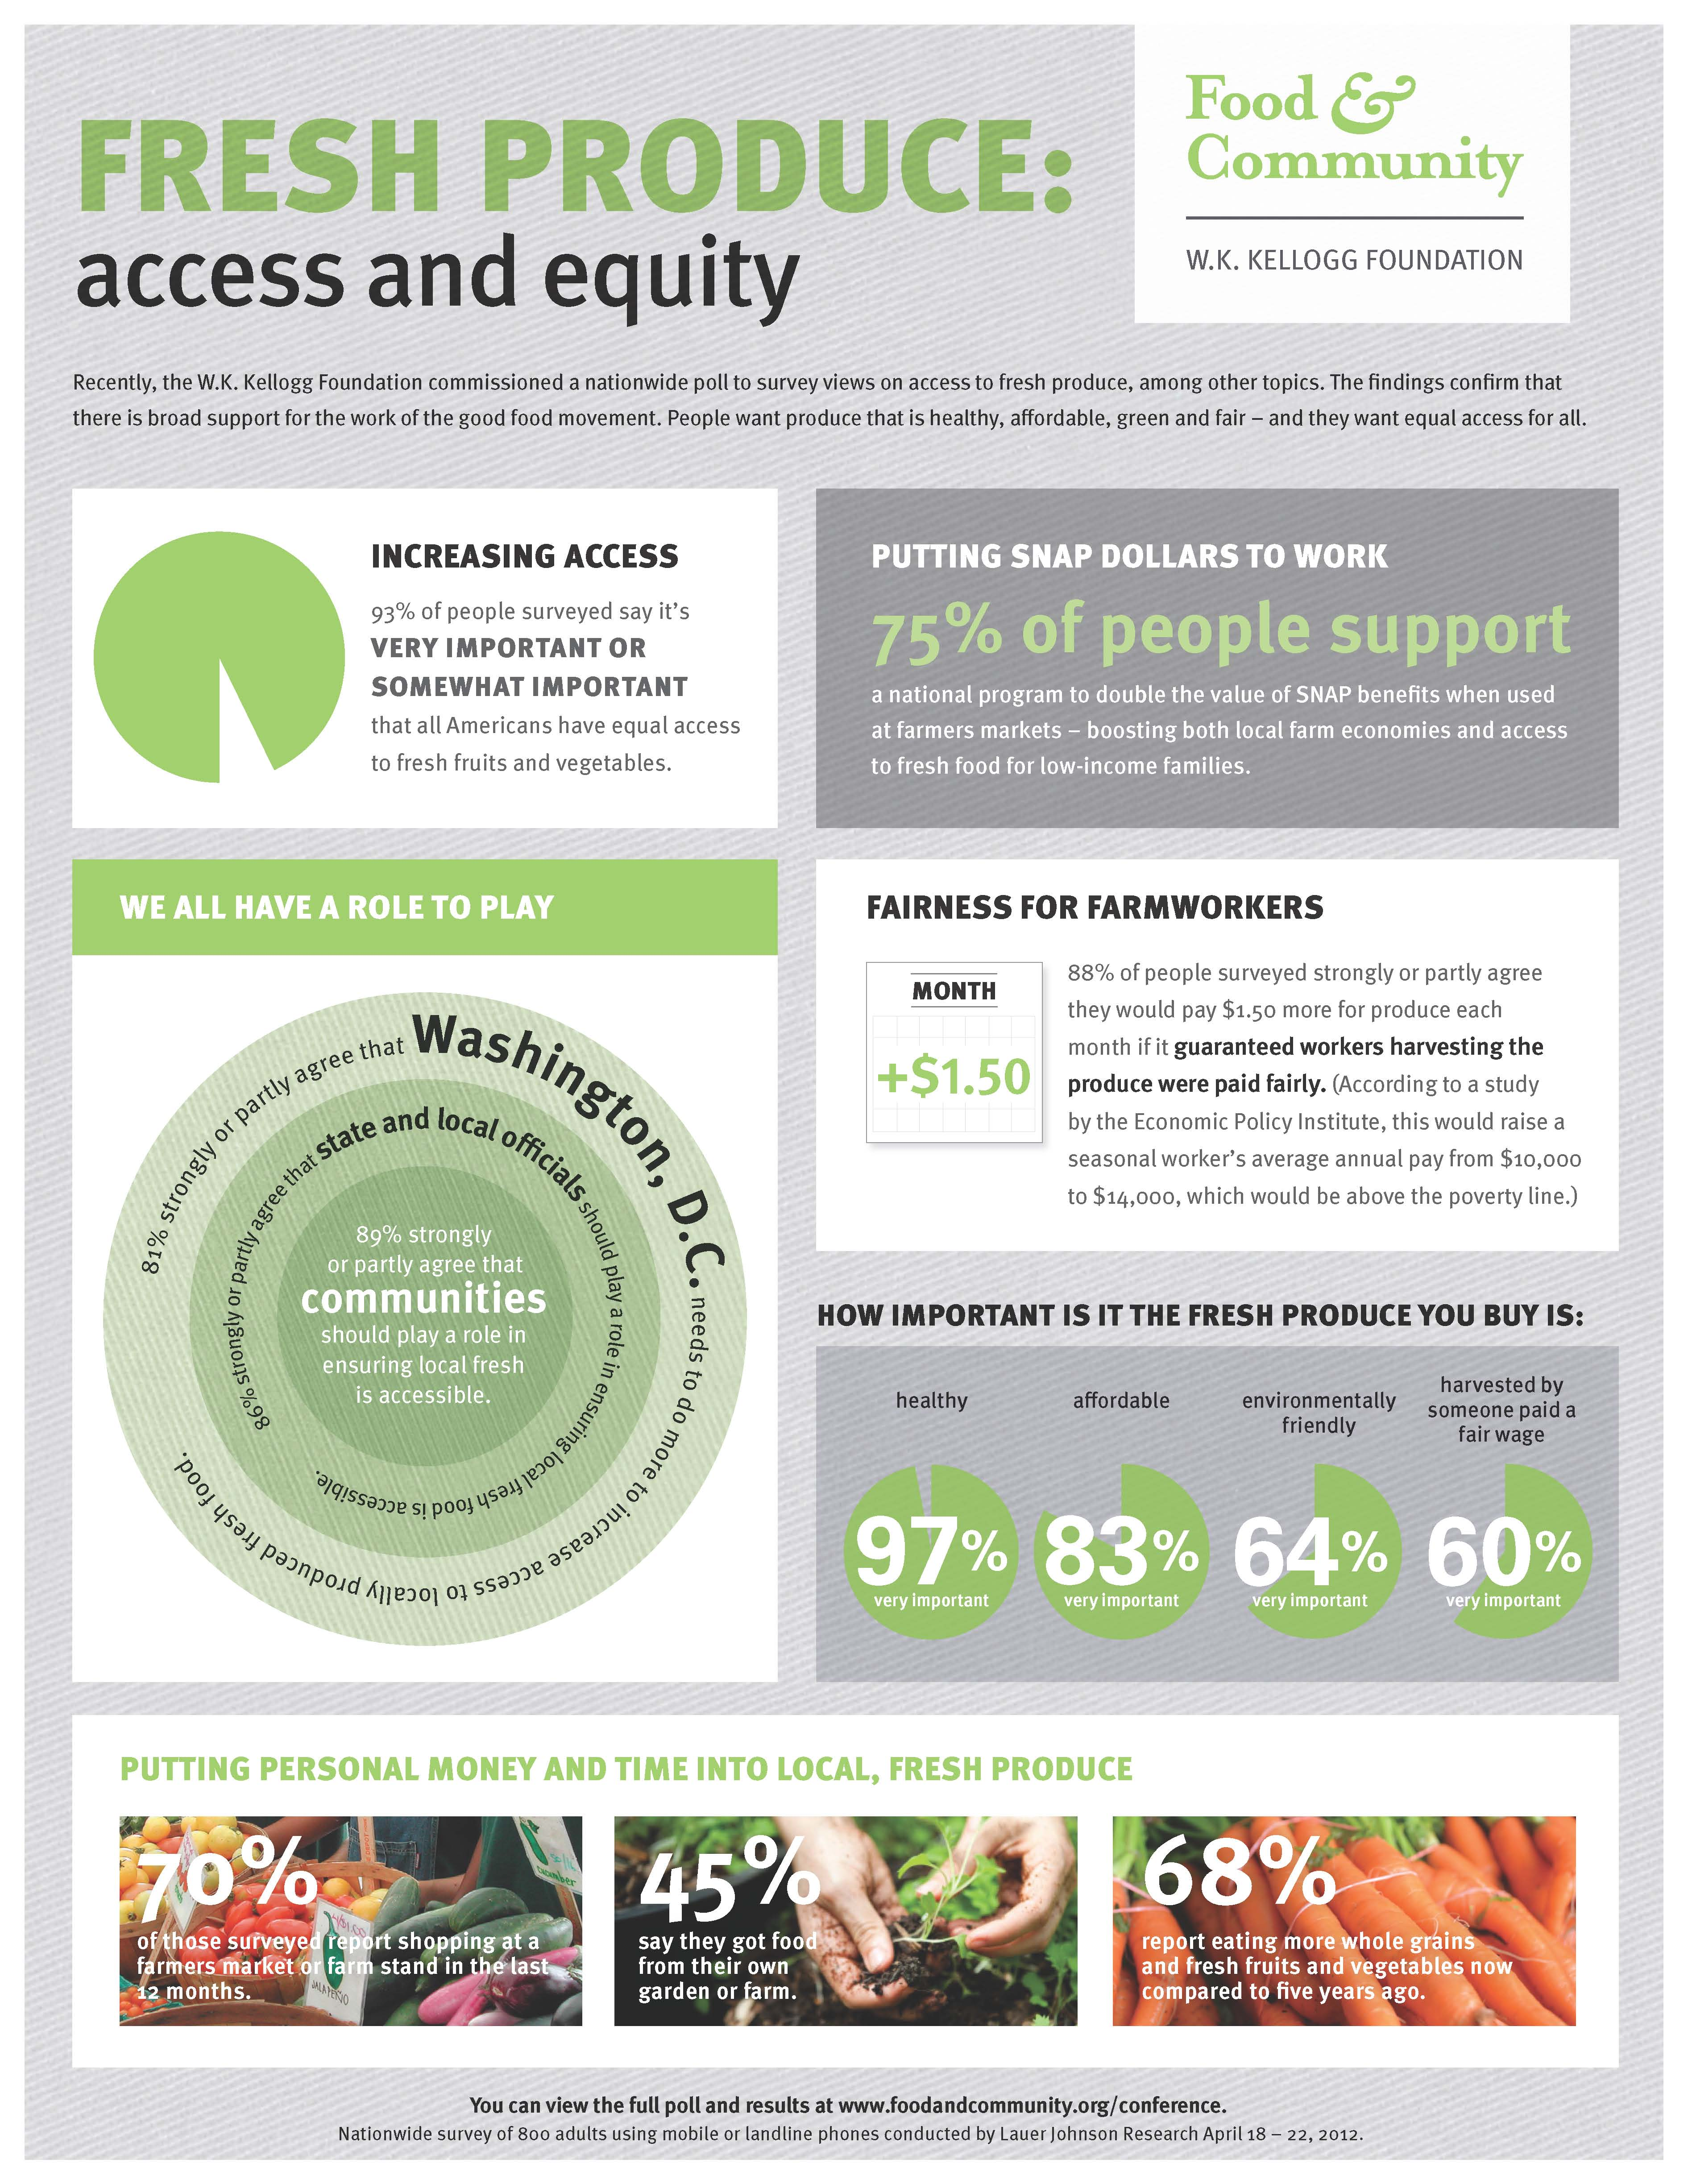 Fresh-Produce-Access-And-Equity-infographic